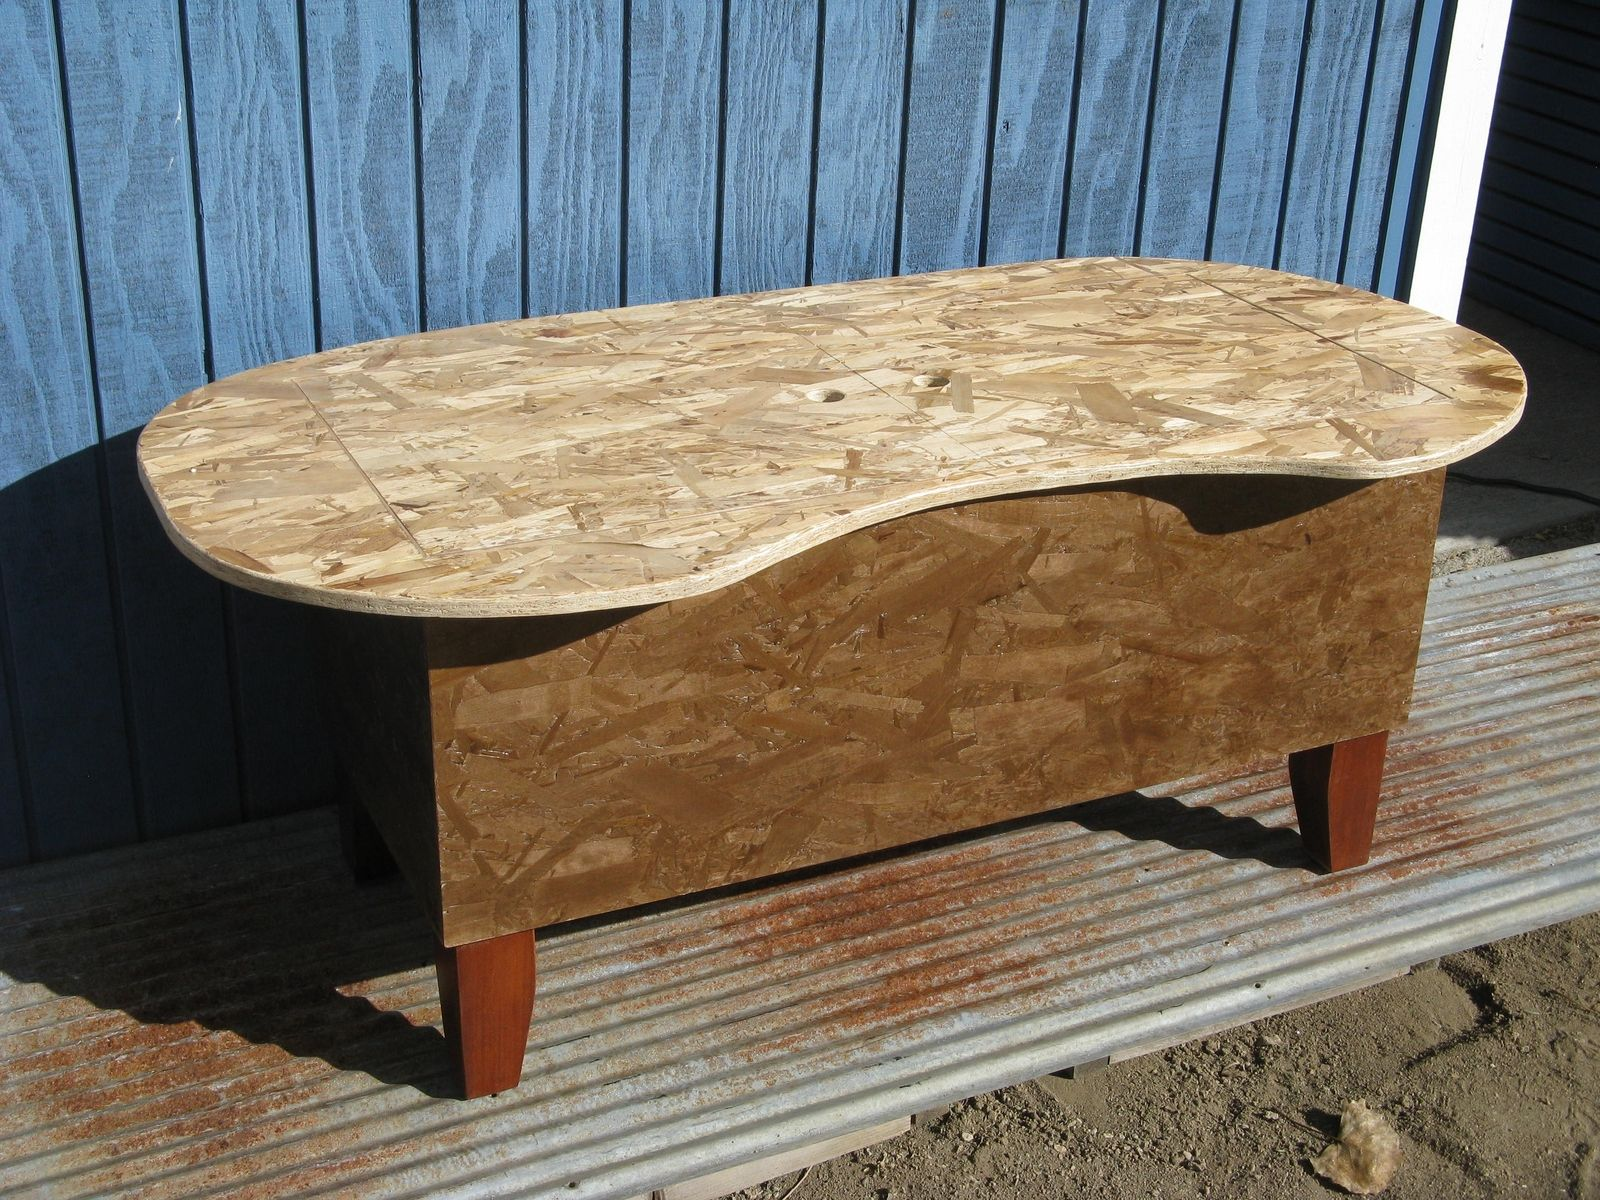 Hand crafted bathtub kidney bean shaped coffee table by modular custom made bathtub kidney bean shaped coffee table geotapseo Choice Image